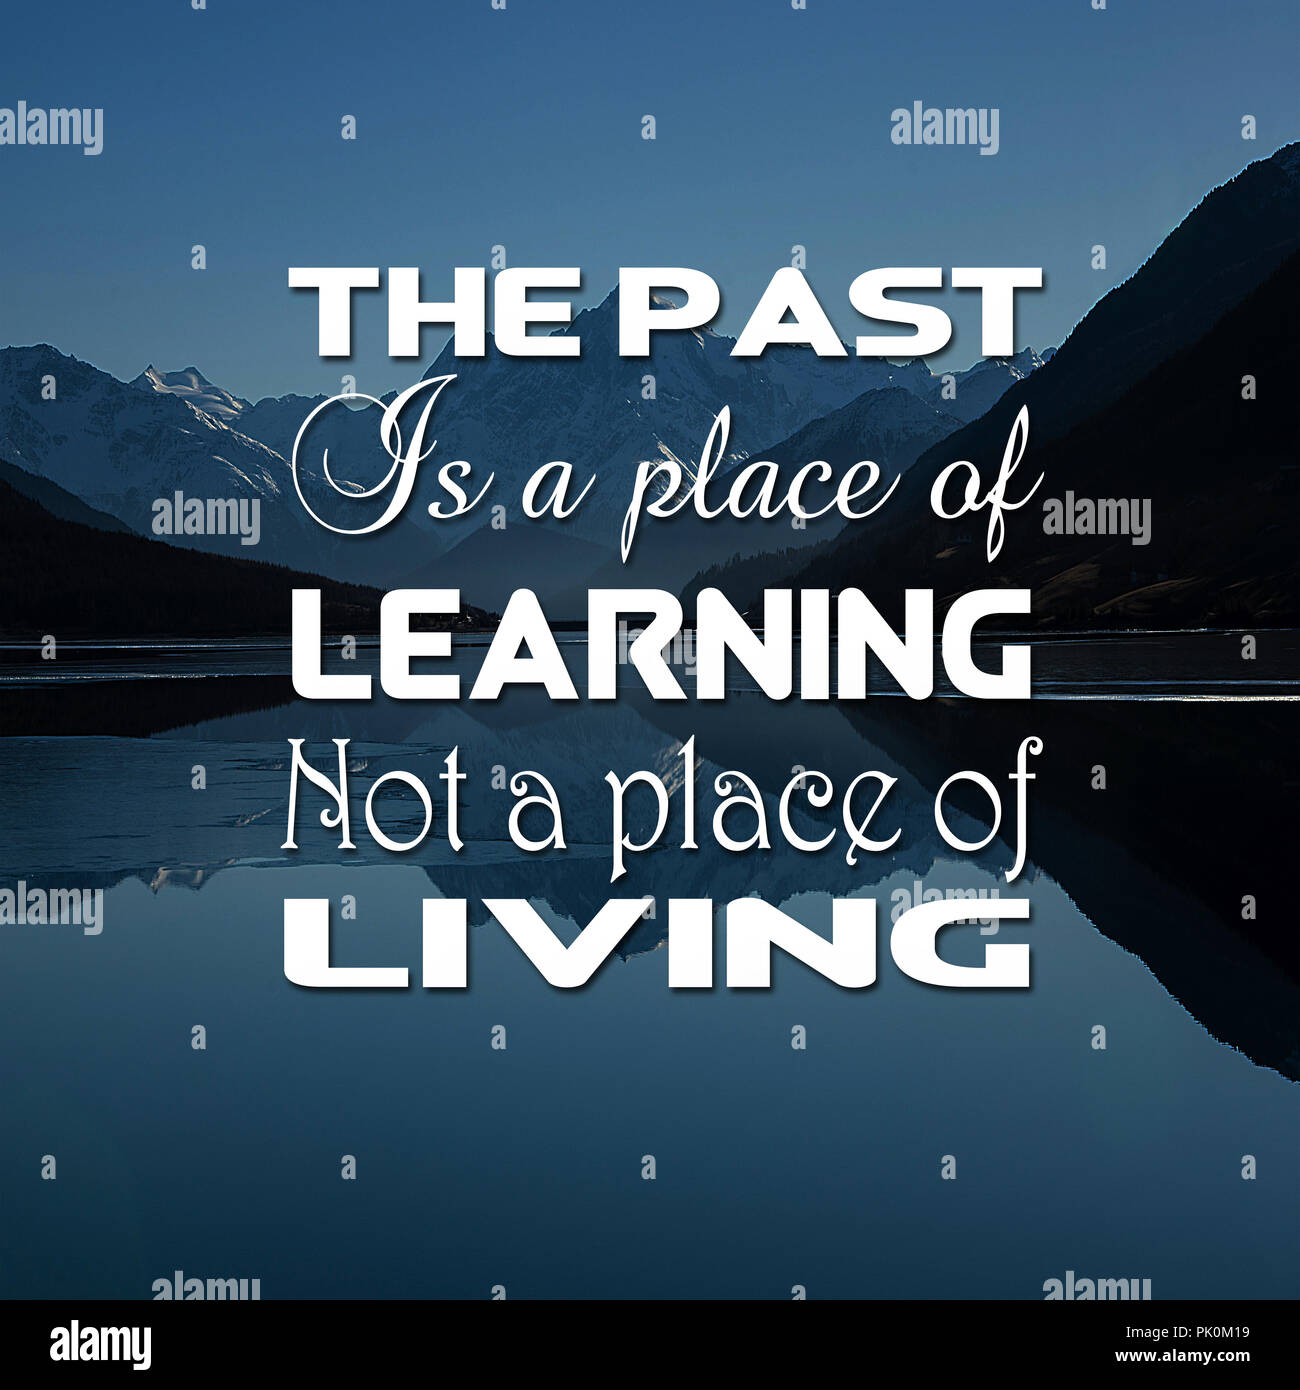 Inspirational Quotes The past is a place of learning not a place